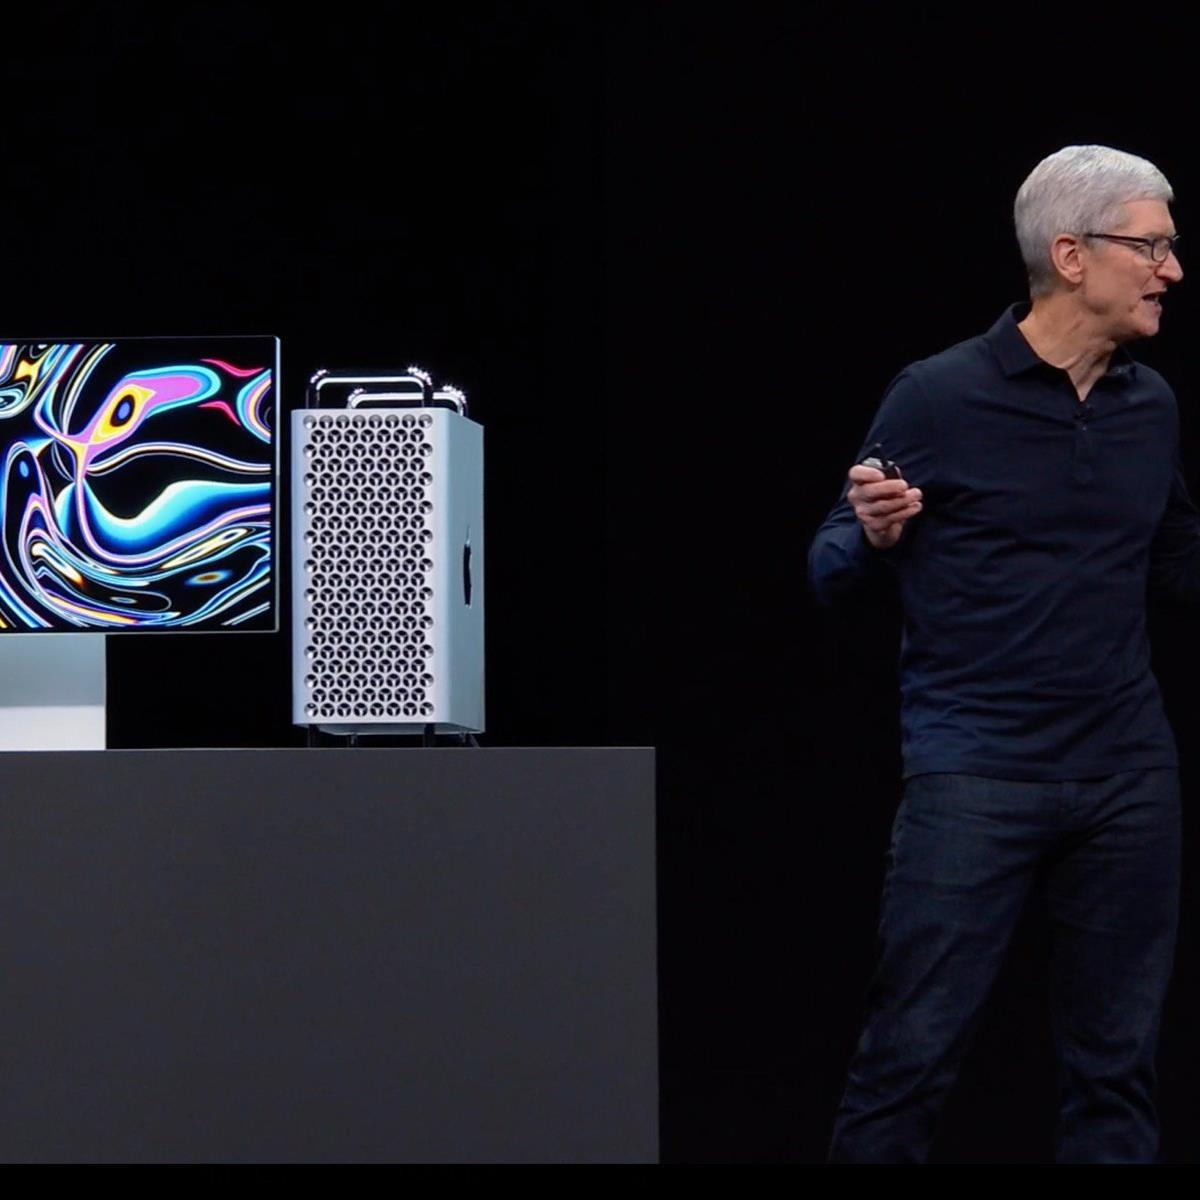 Maingear CEO Bites Into Apple For Straying From Its Mac Pro